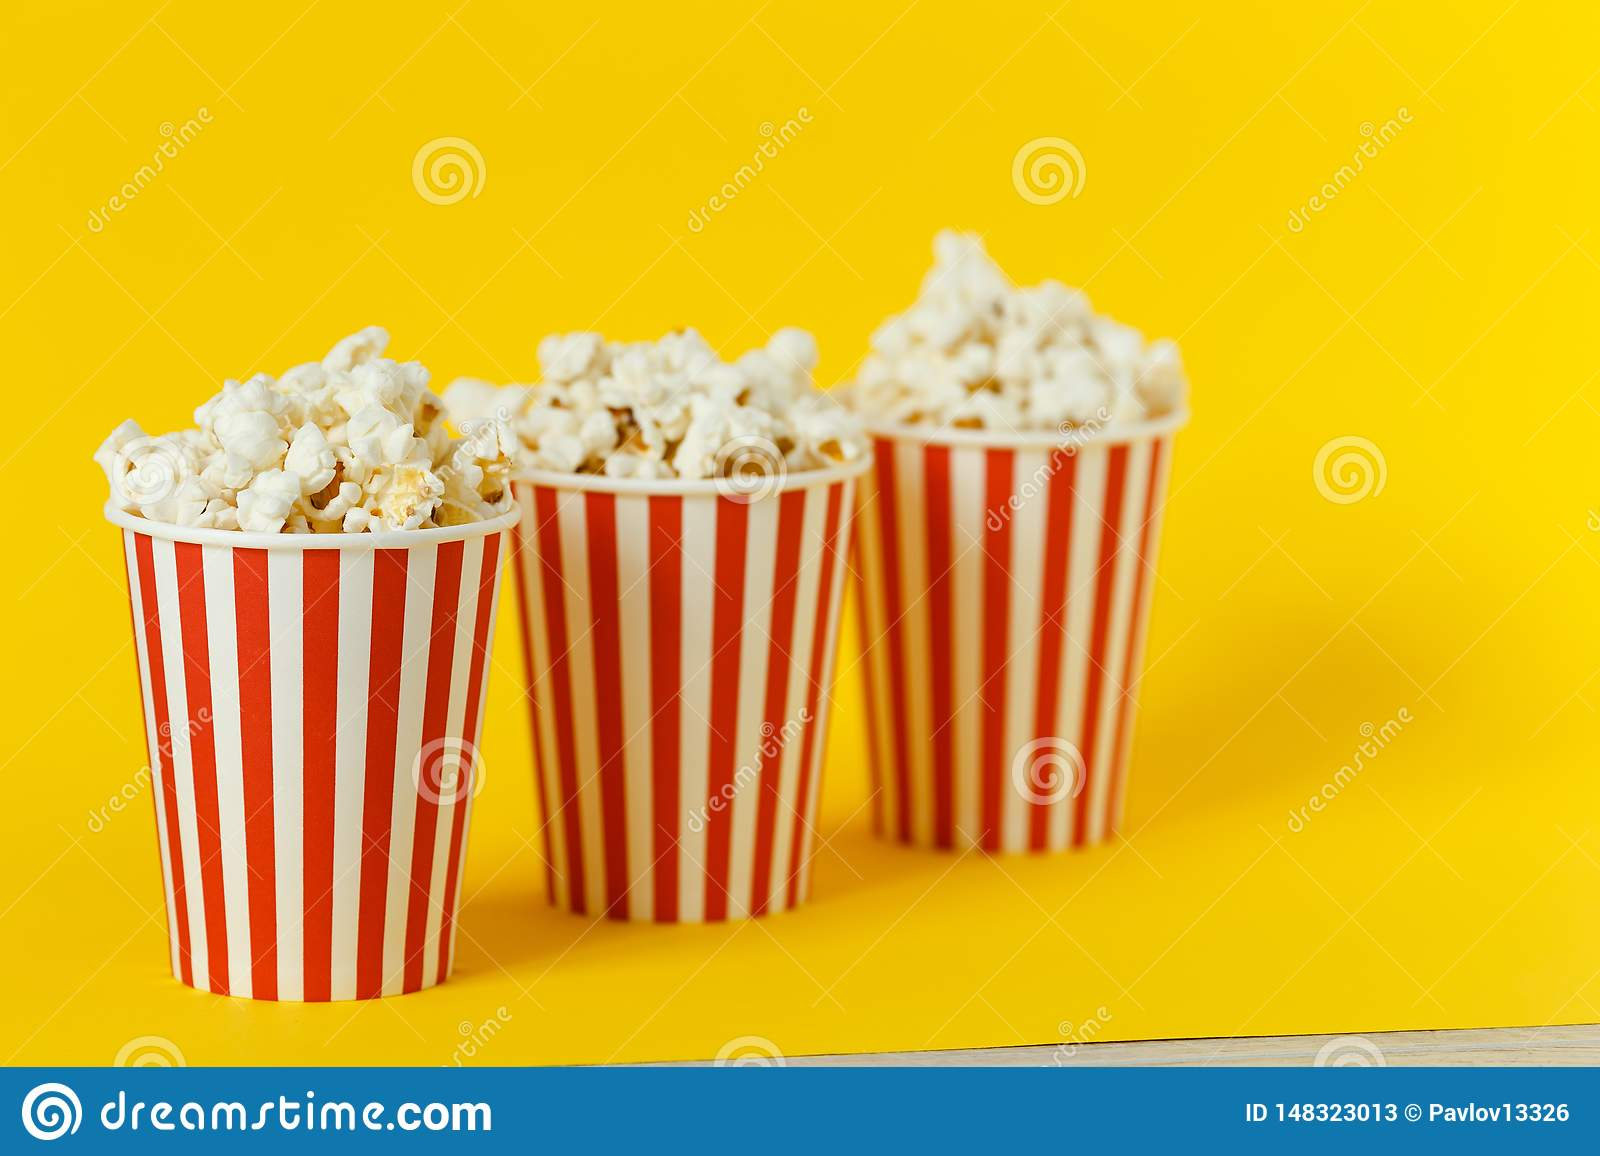 Three Carton Bucket With Cinema Snack Popcorn And Red Cups On Color Yellow Background Space For Text Stock Image Image Of Film Closeup 148323013